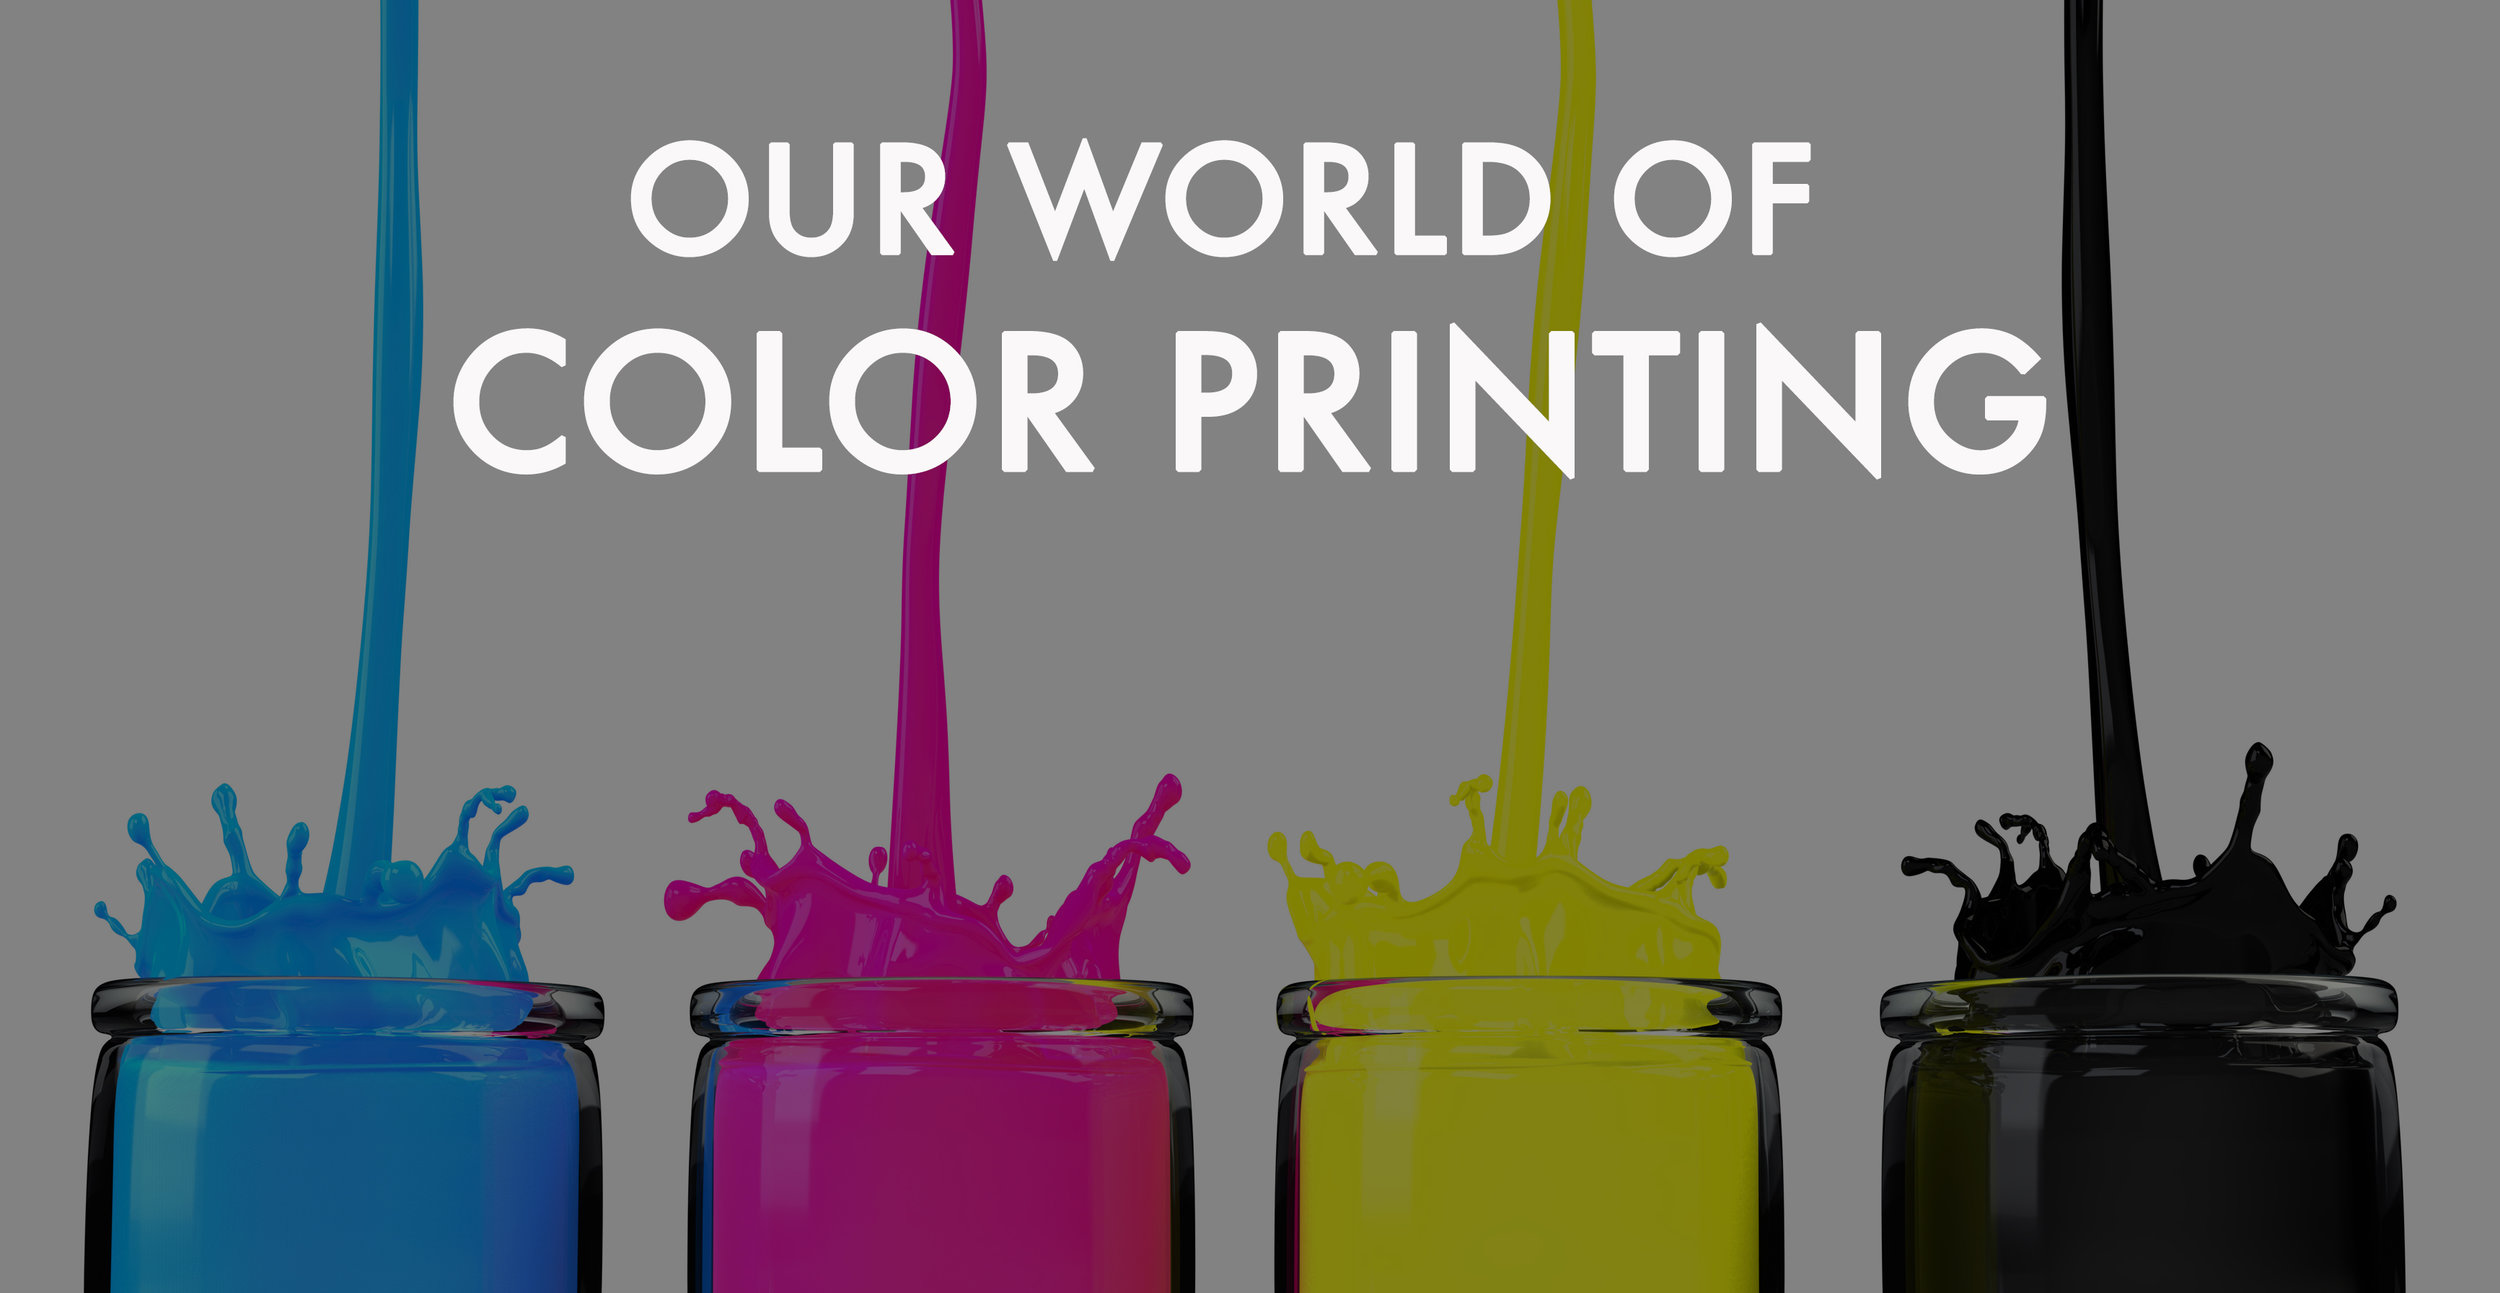 our-world-color-printing-v2.jpg